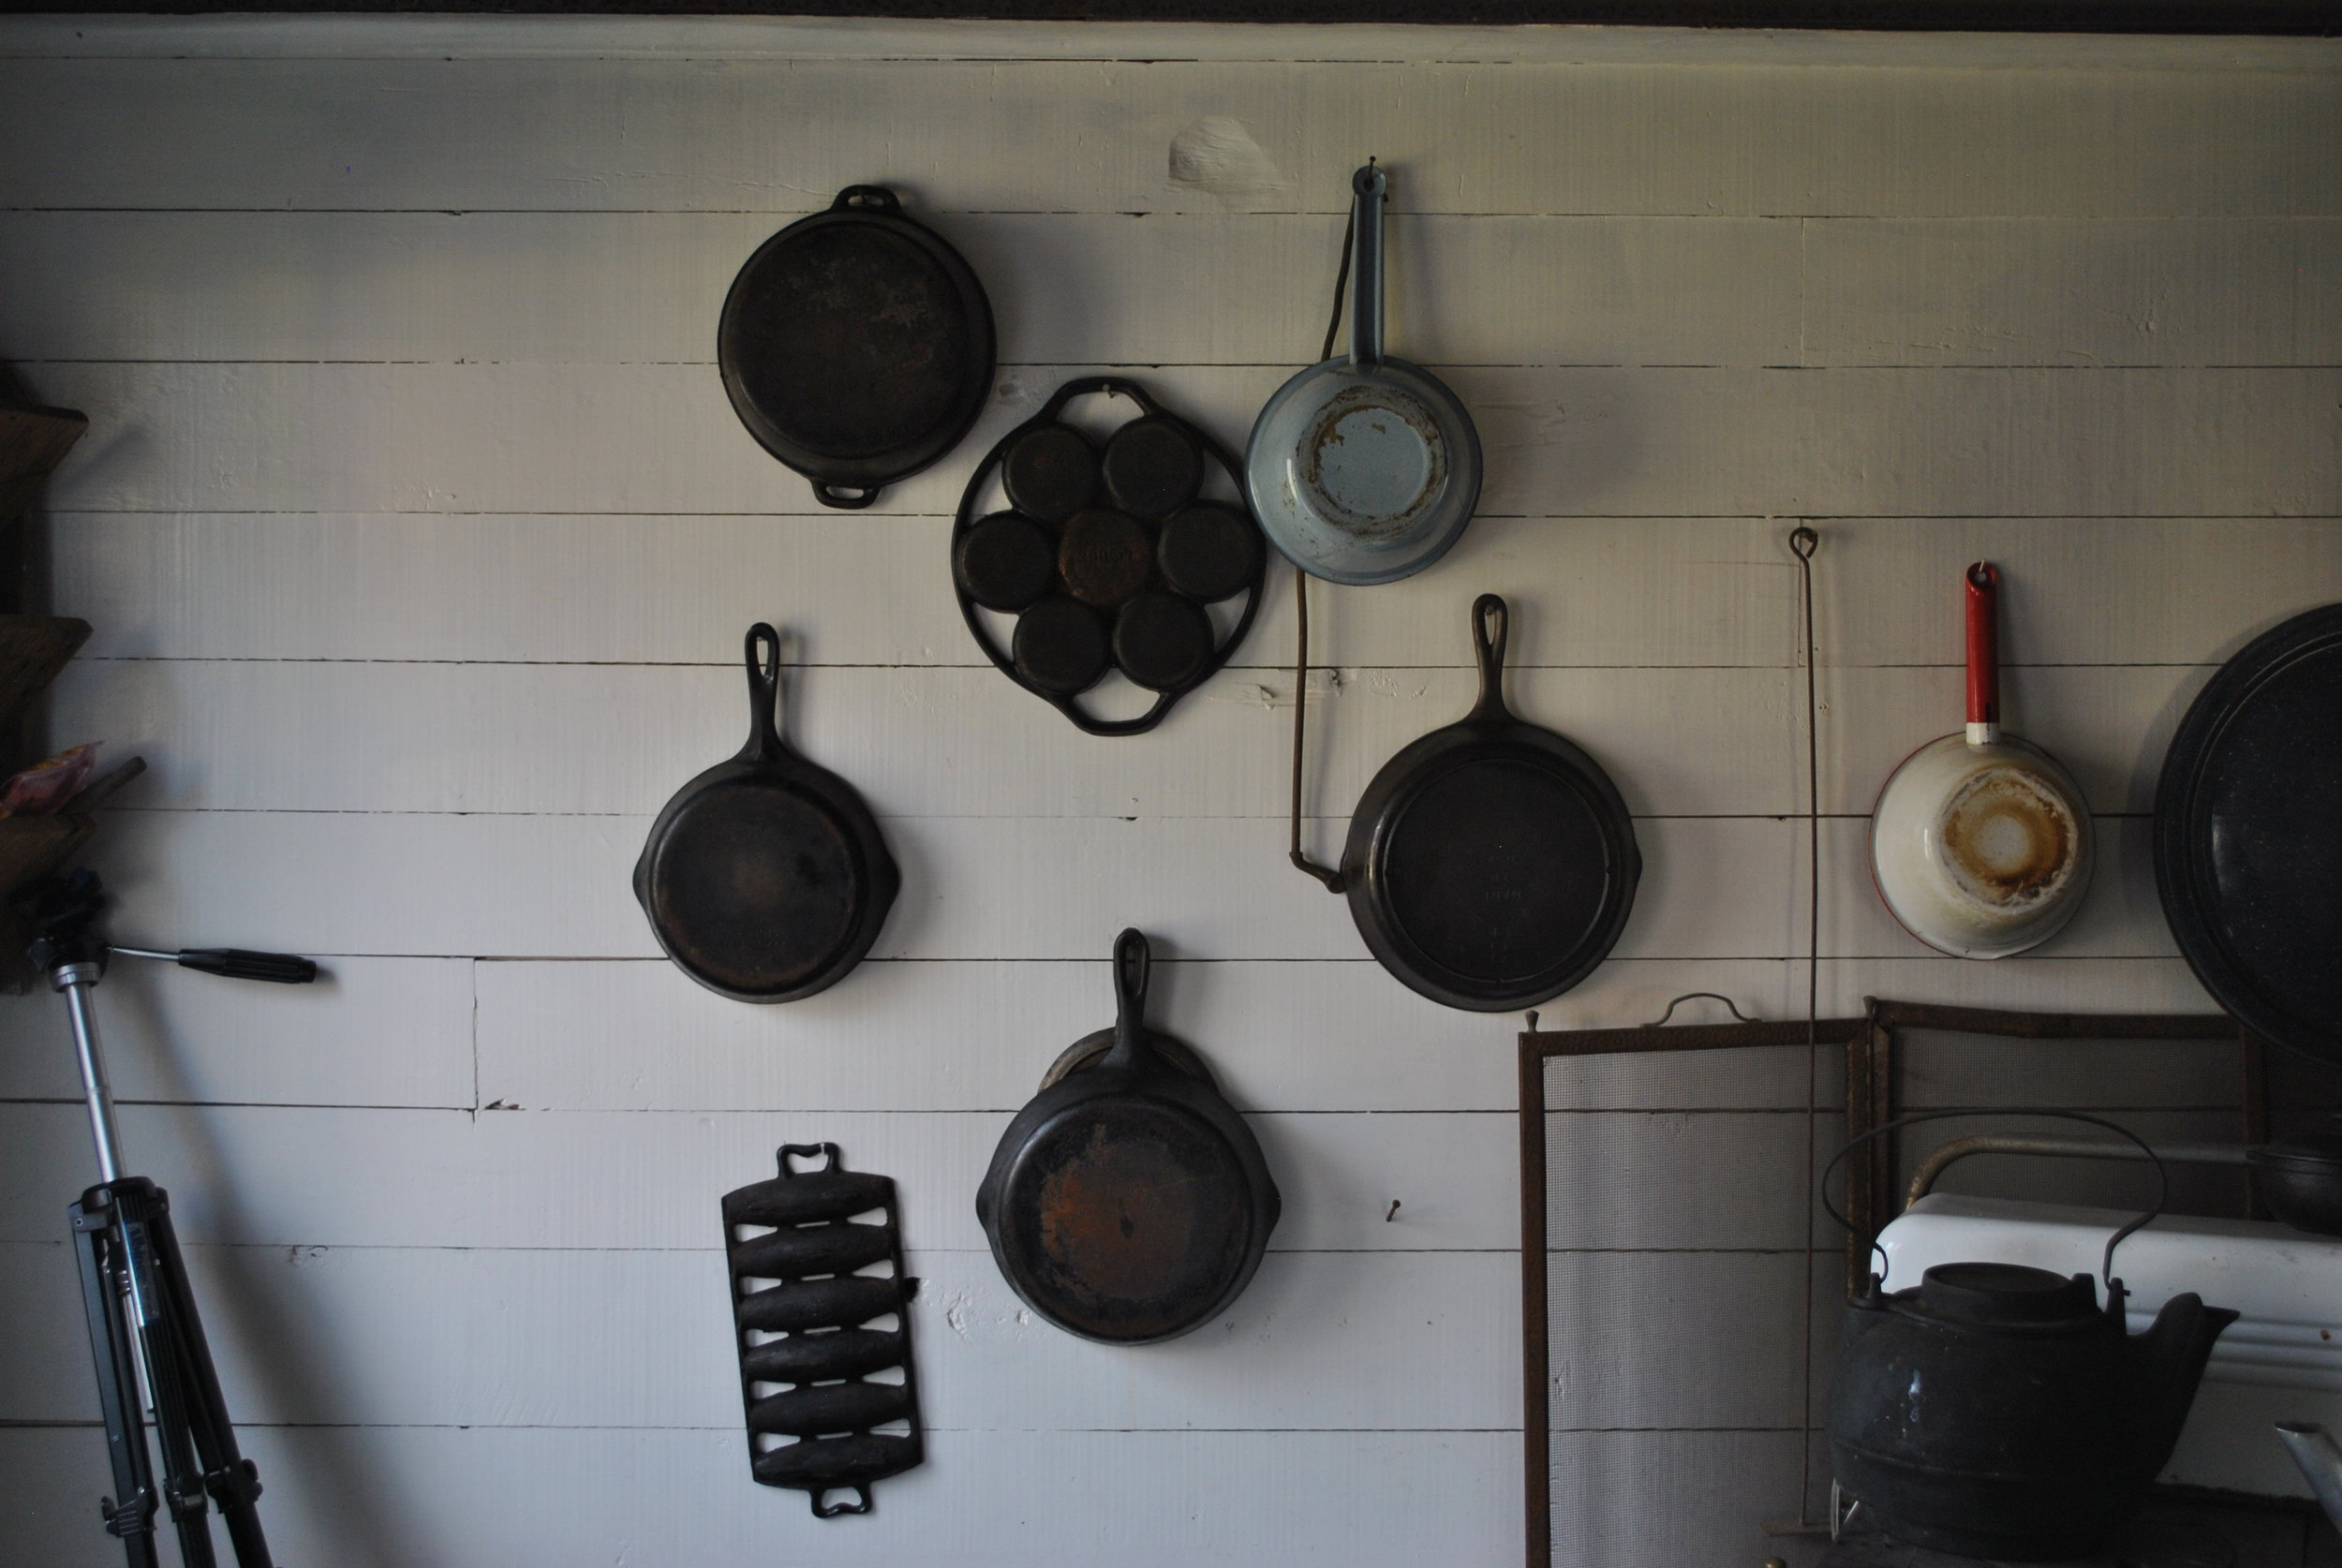 Cast iron cookware provided